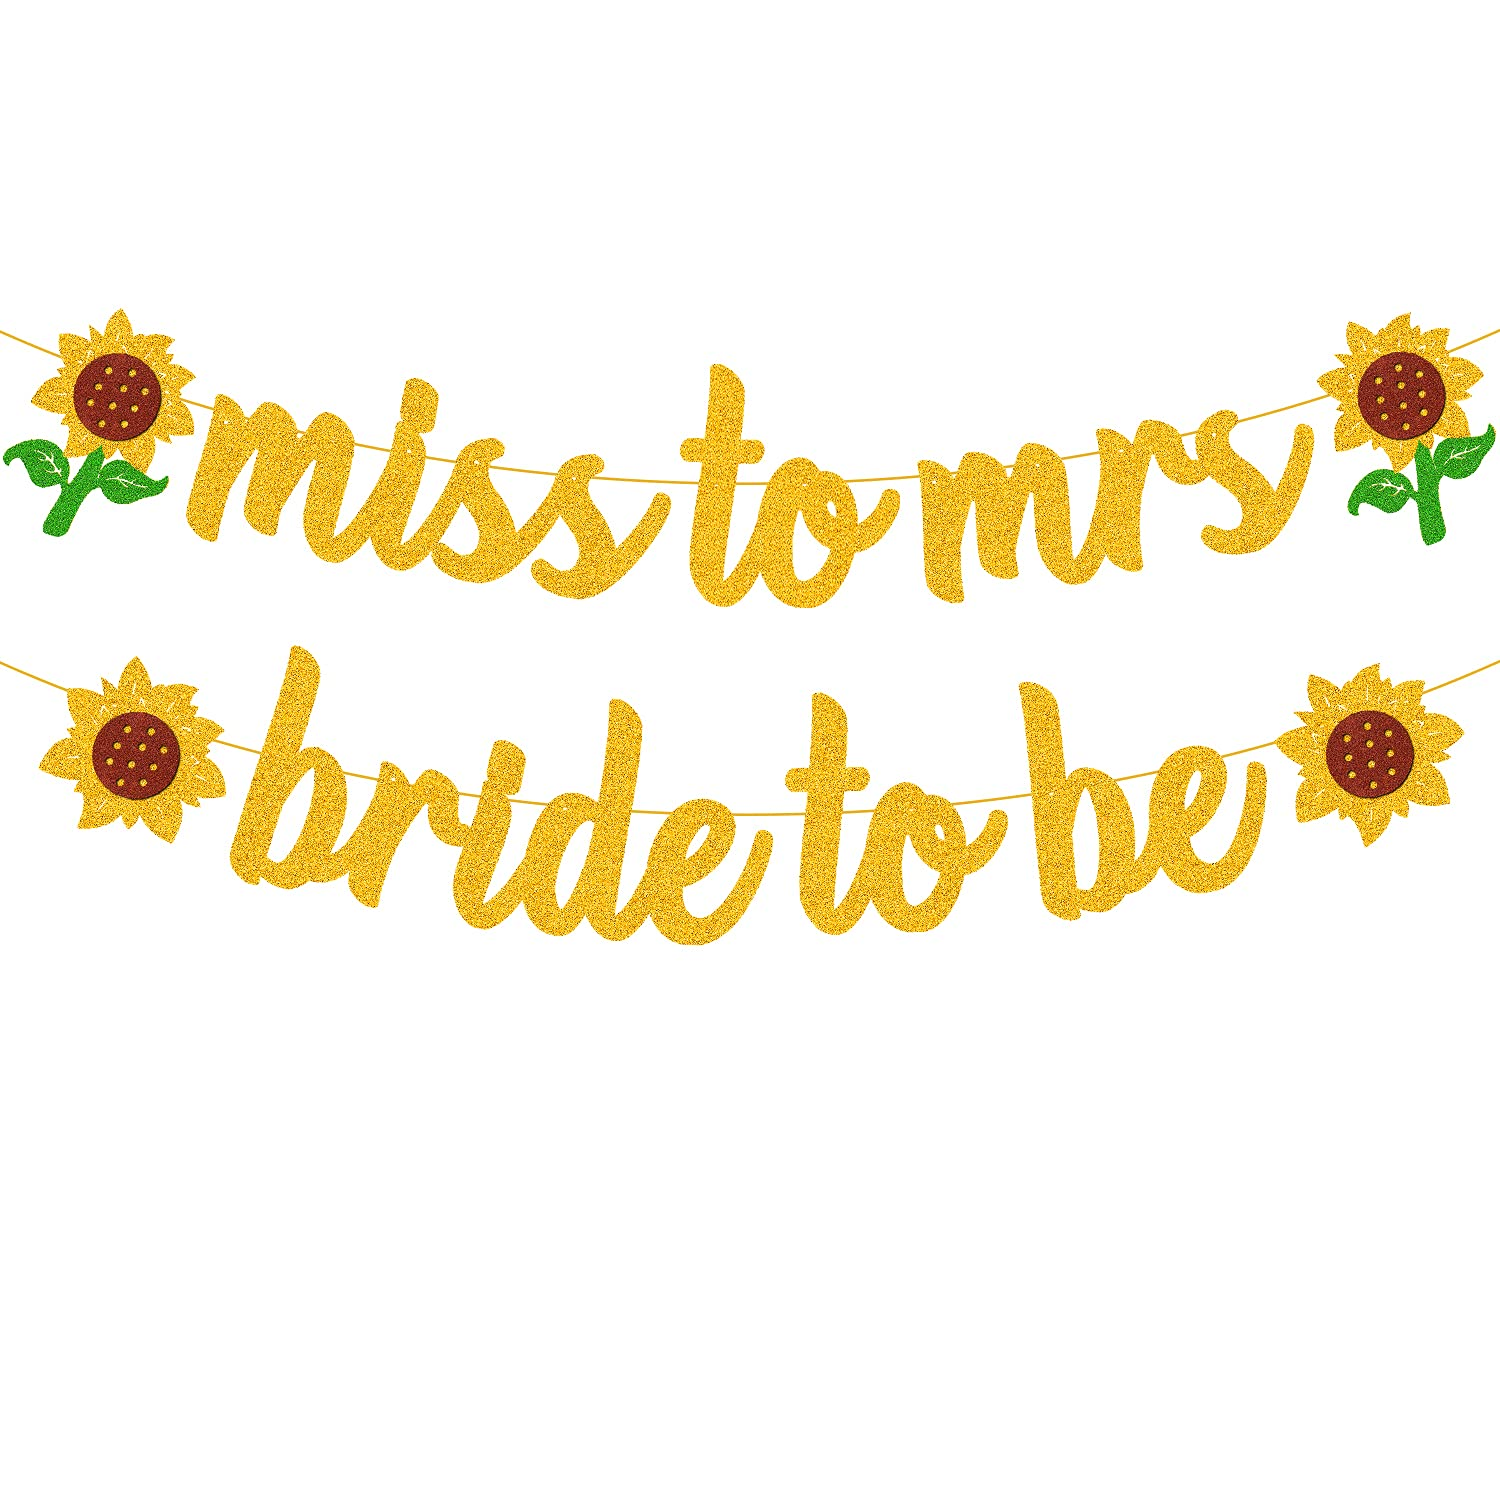 Sunflower Bridal Shower Decorations Bride-to-be Banner Miss-to-mrs Garland for Wedding Engagement Bachelorette Hen Party Supplies Glitter Décor